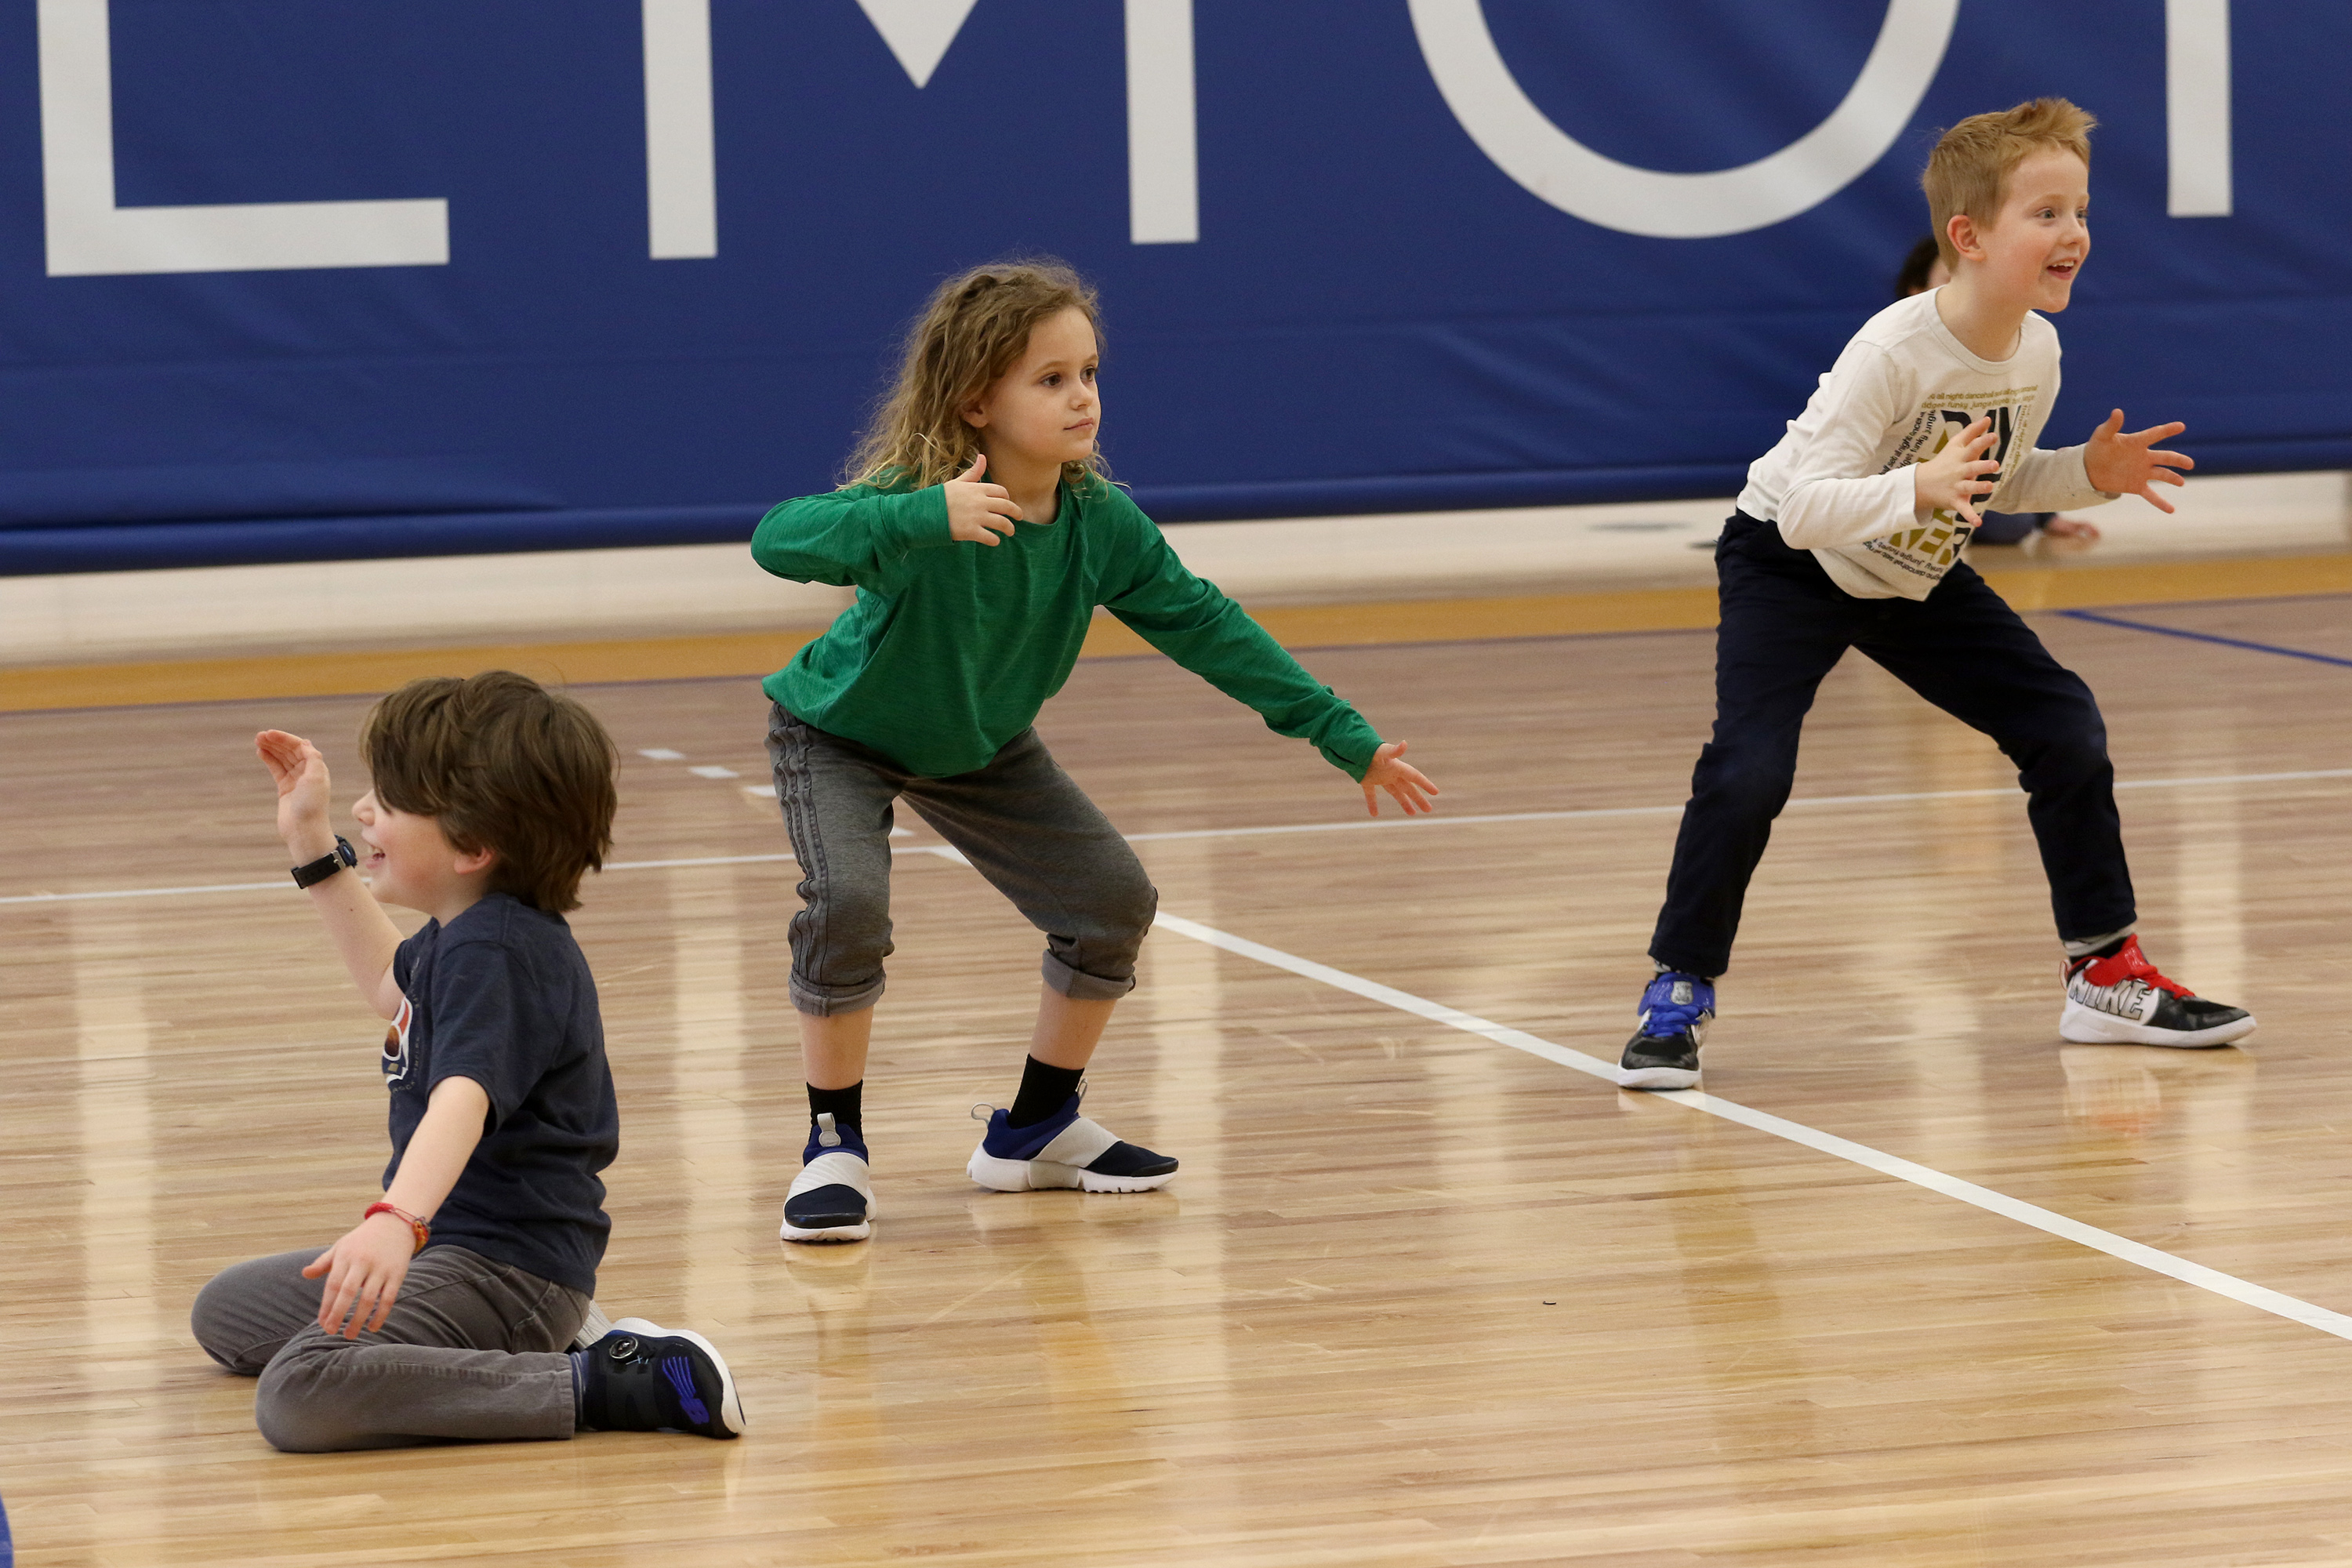 """Students play """"Museum"""" in physical education class"""